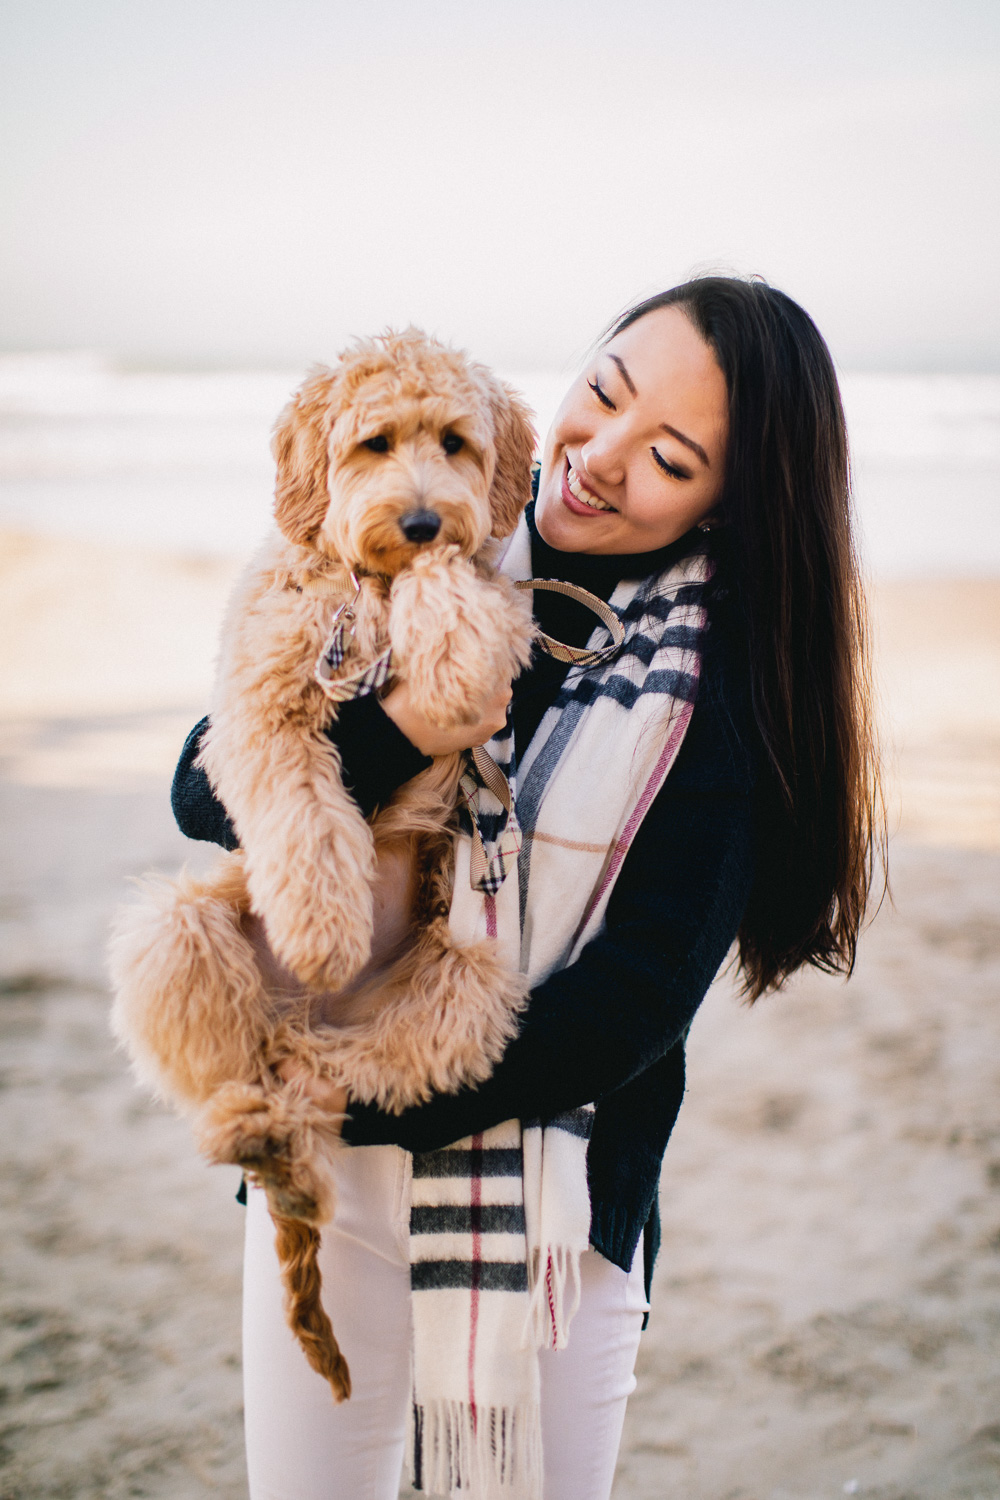 Pismo-Beach-Couples-Photography-Session-With-Puppy-102.jpg